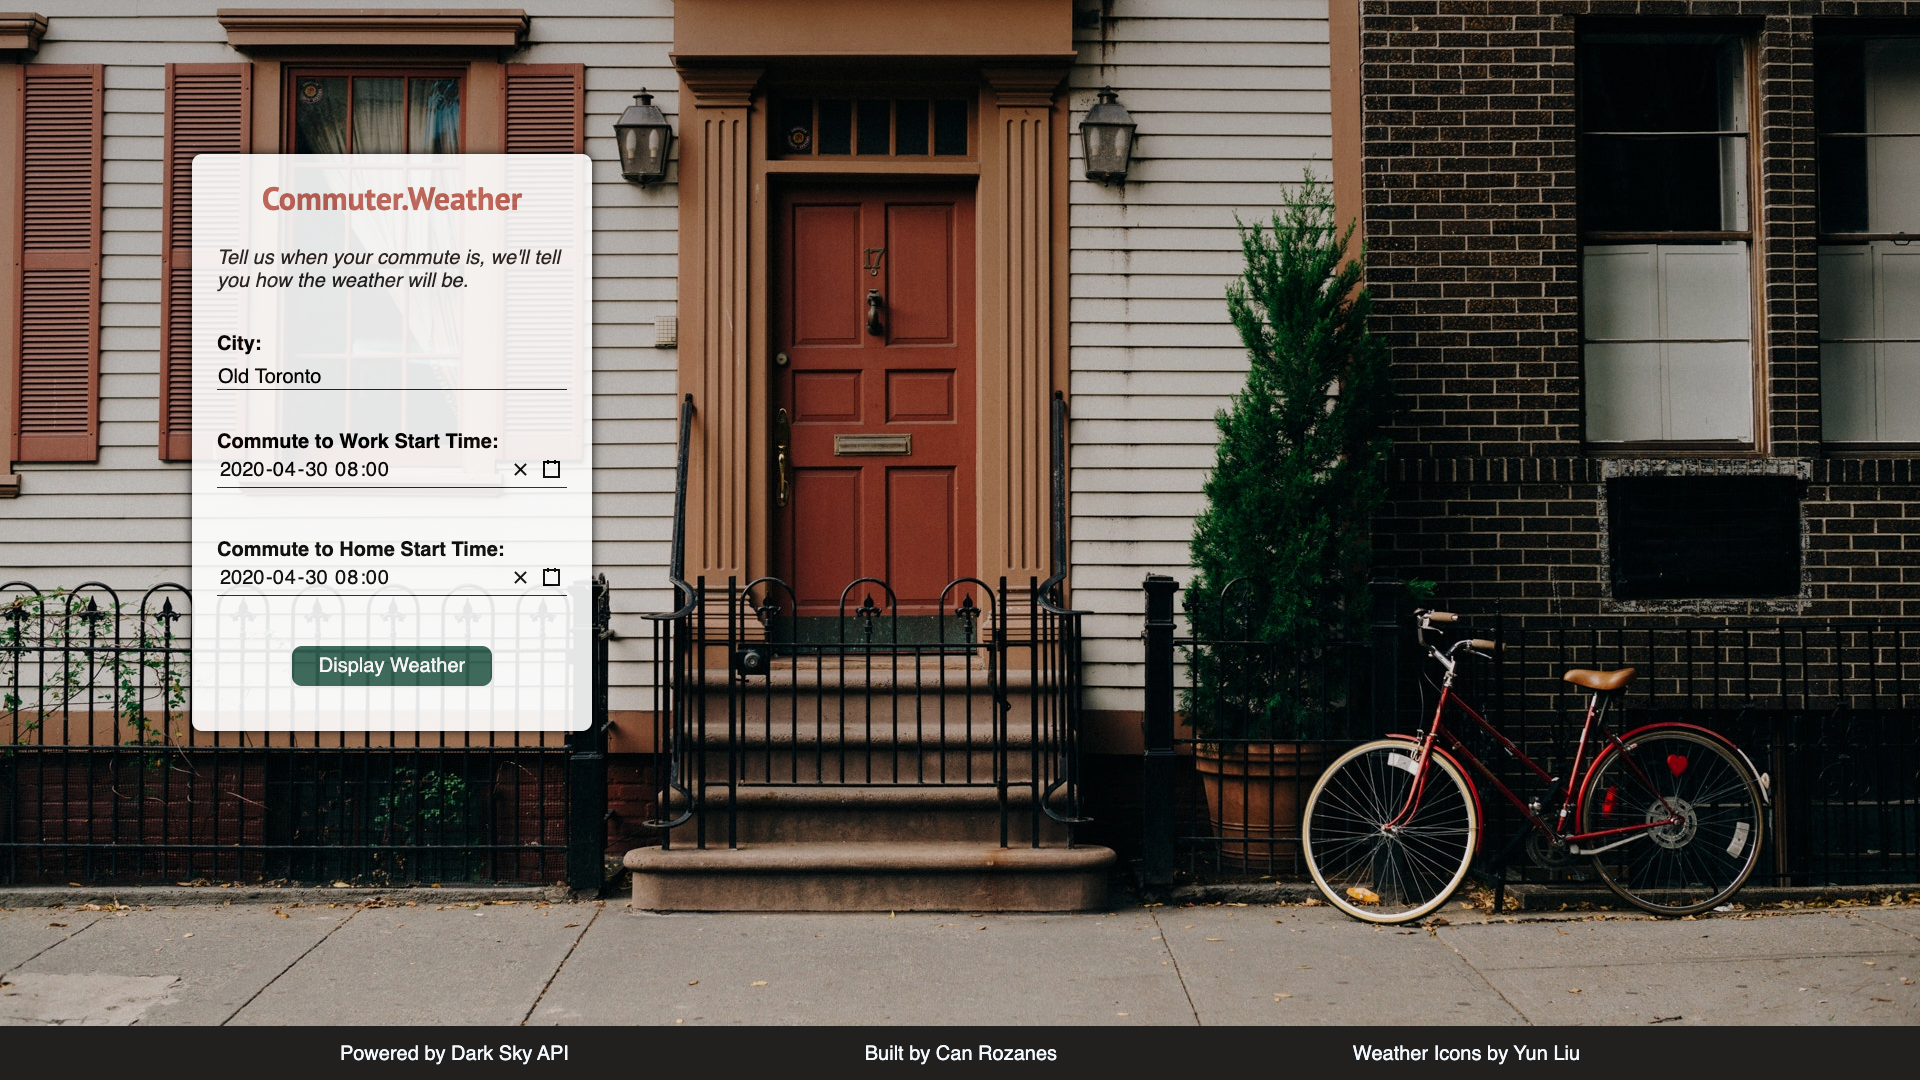 screenshots of my Commuter Weather landing page